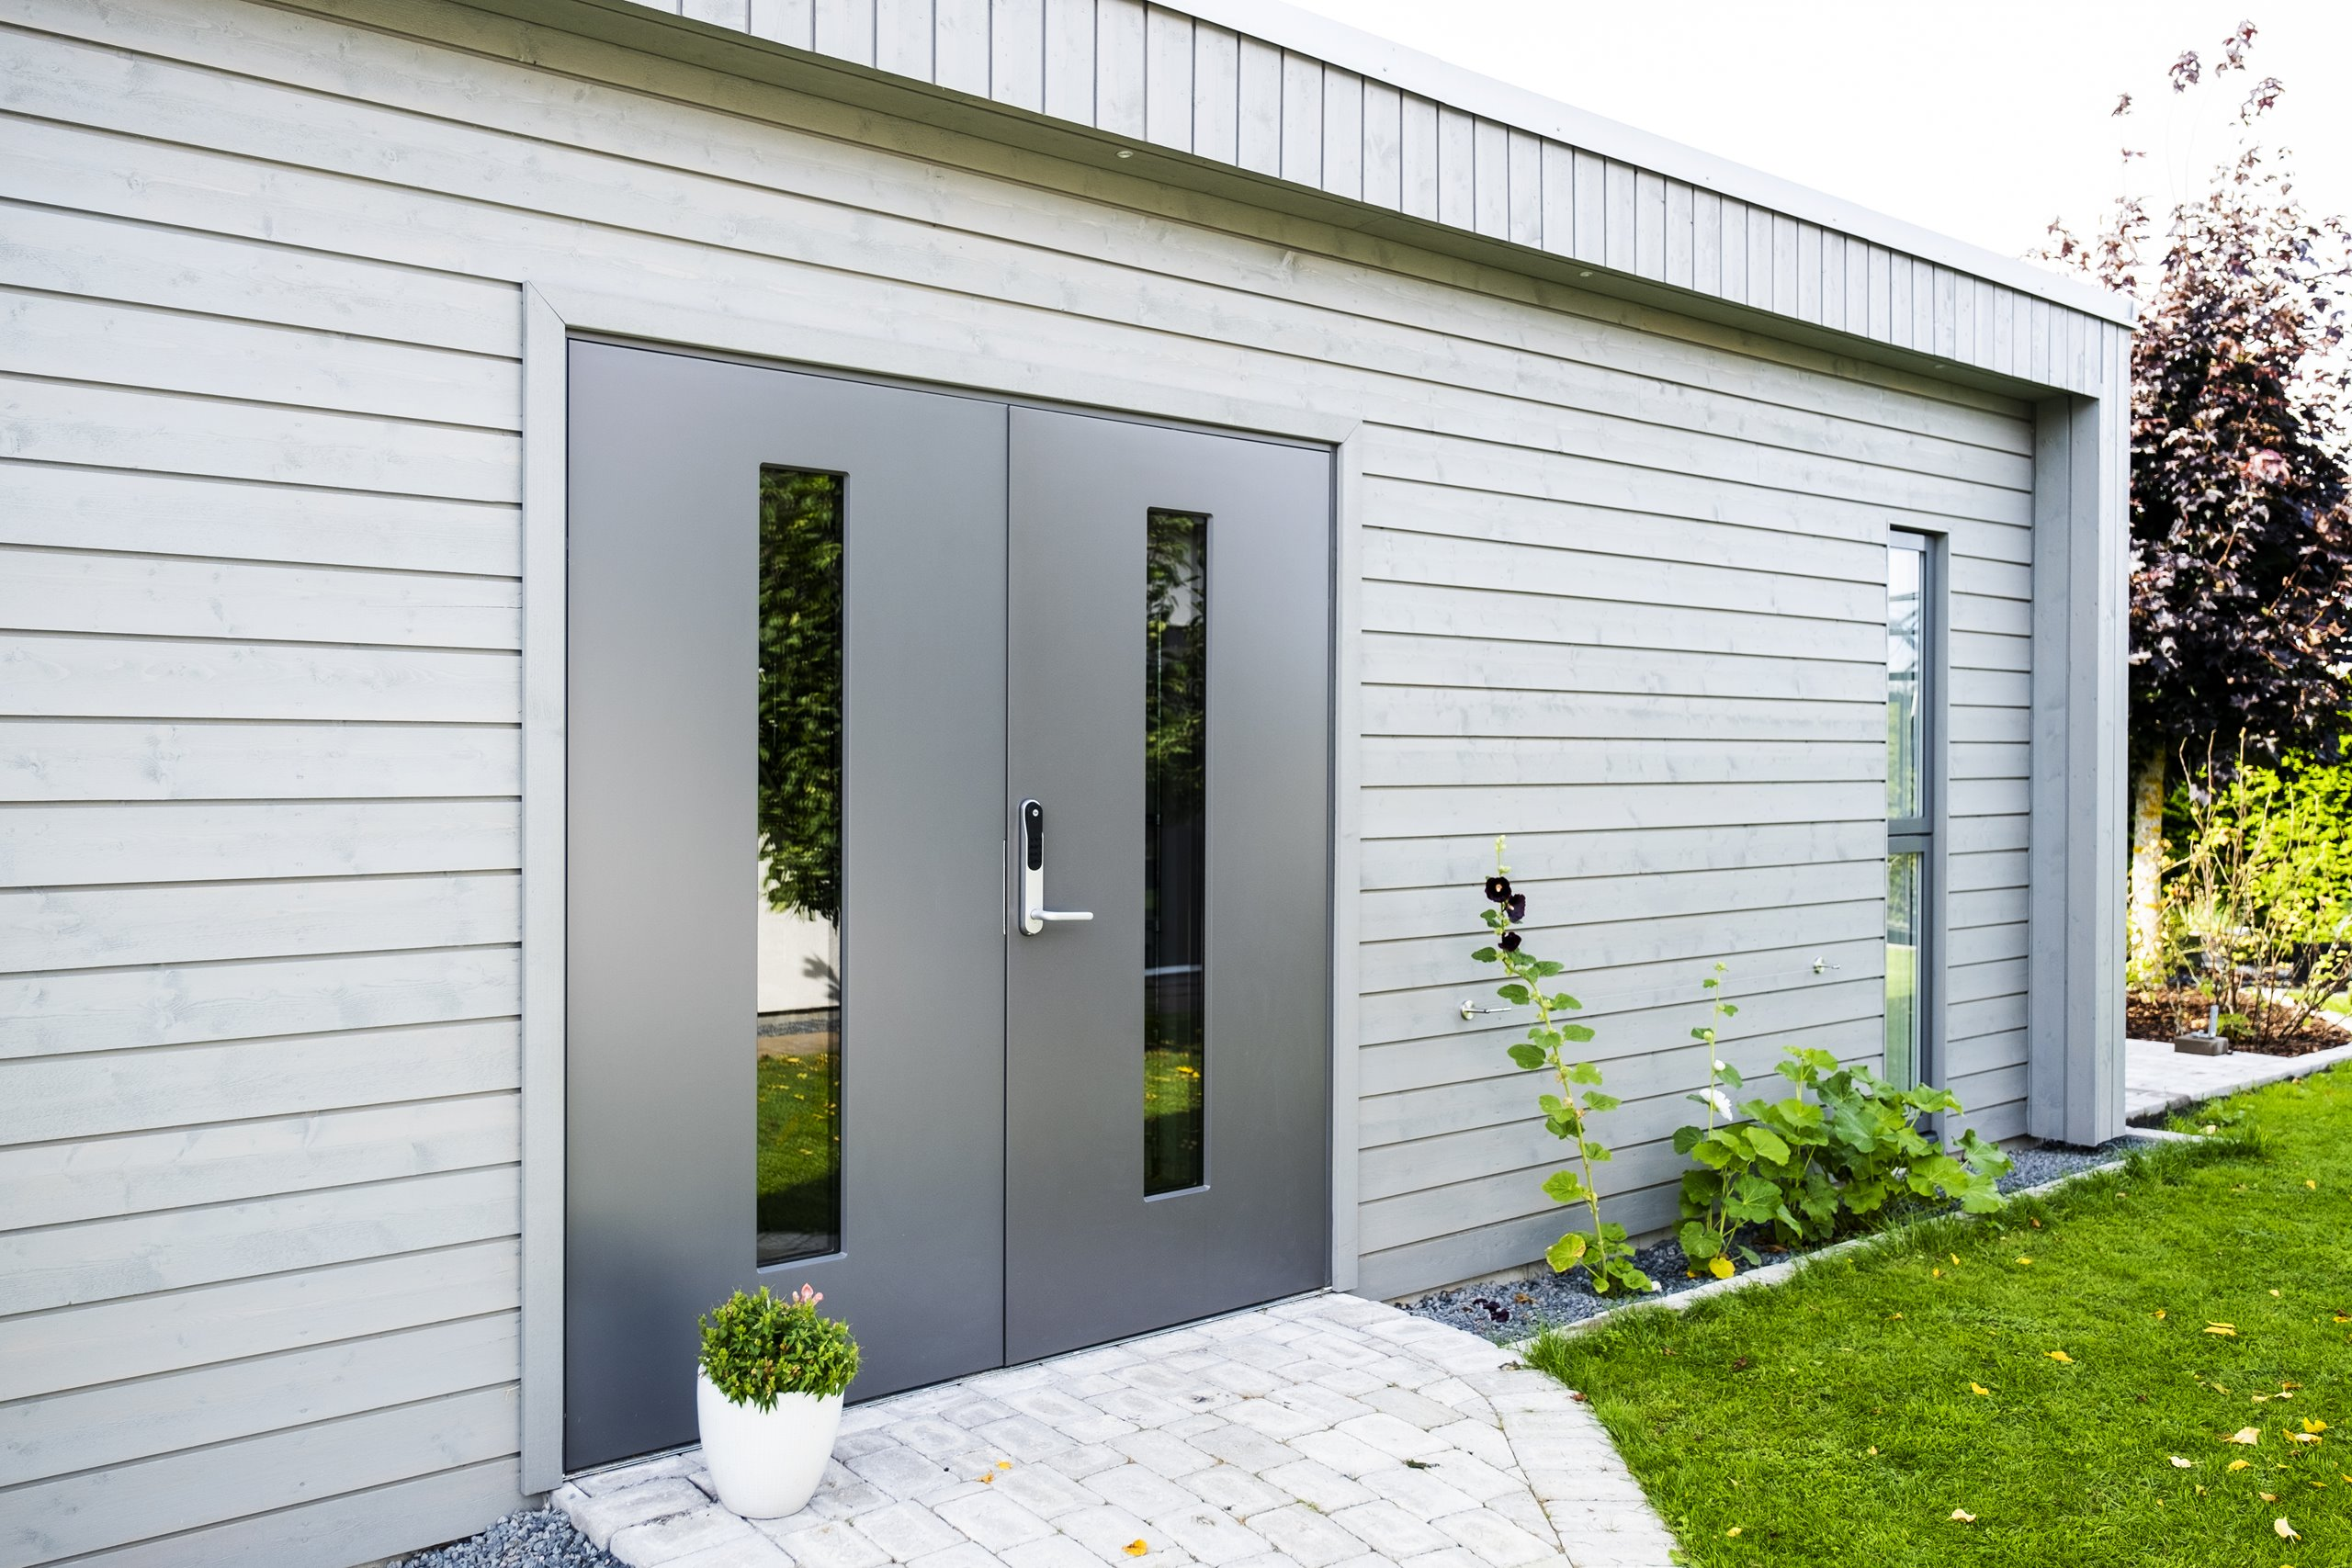 JW-Exterior-Door-TOWER-Double-gray-in-wooden-garden-house